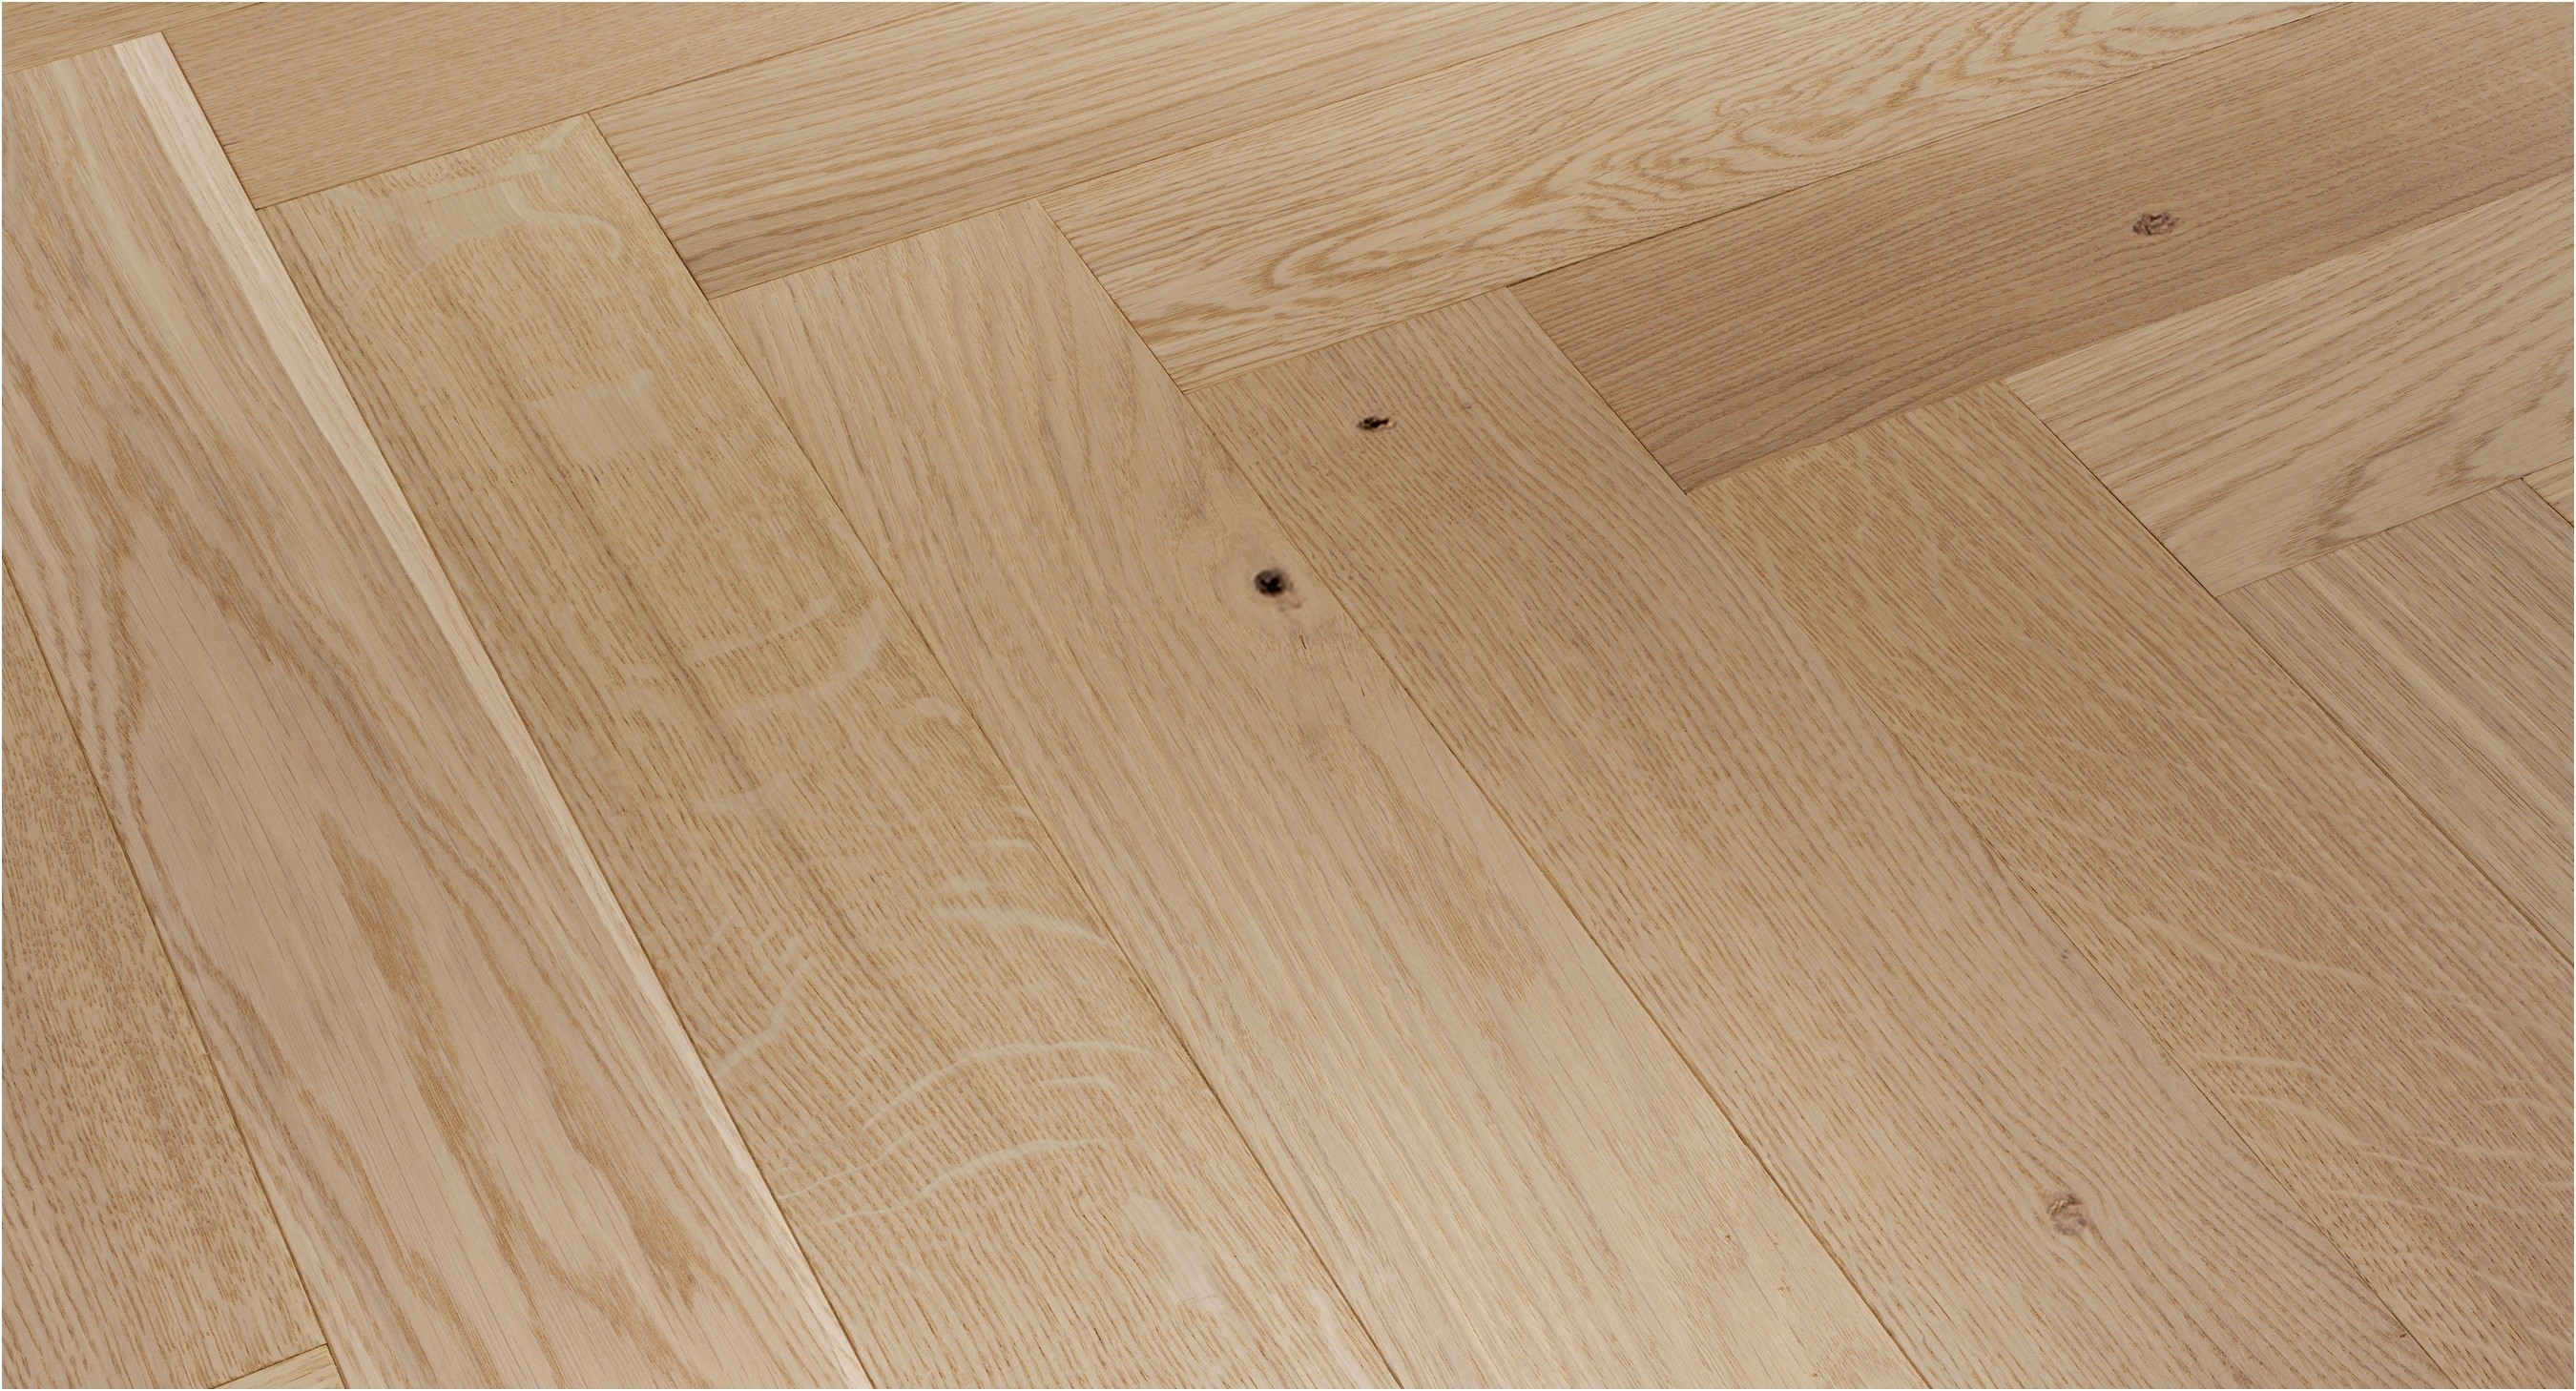 bruce hardwood flooring website of 19 awesome hardwood flooring for sale photograph dizpos com with regard to hardwood flooring for sale awesome flooring sale near me stock 0d grace place barnegat nj photos